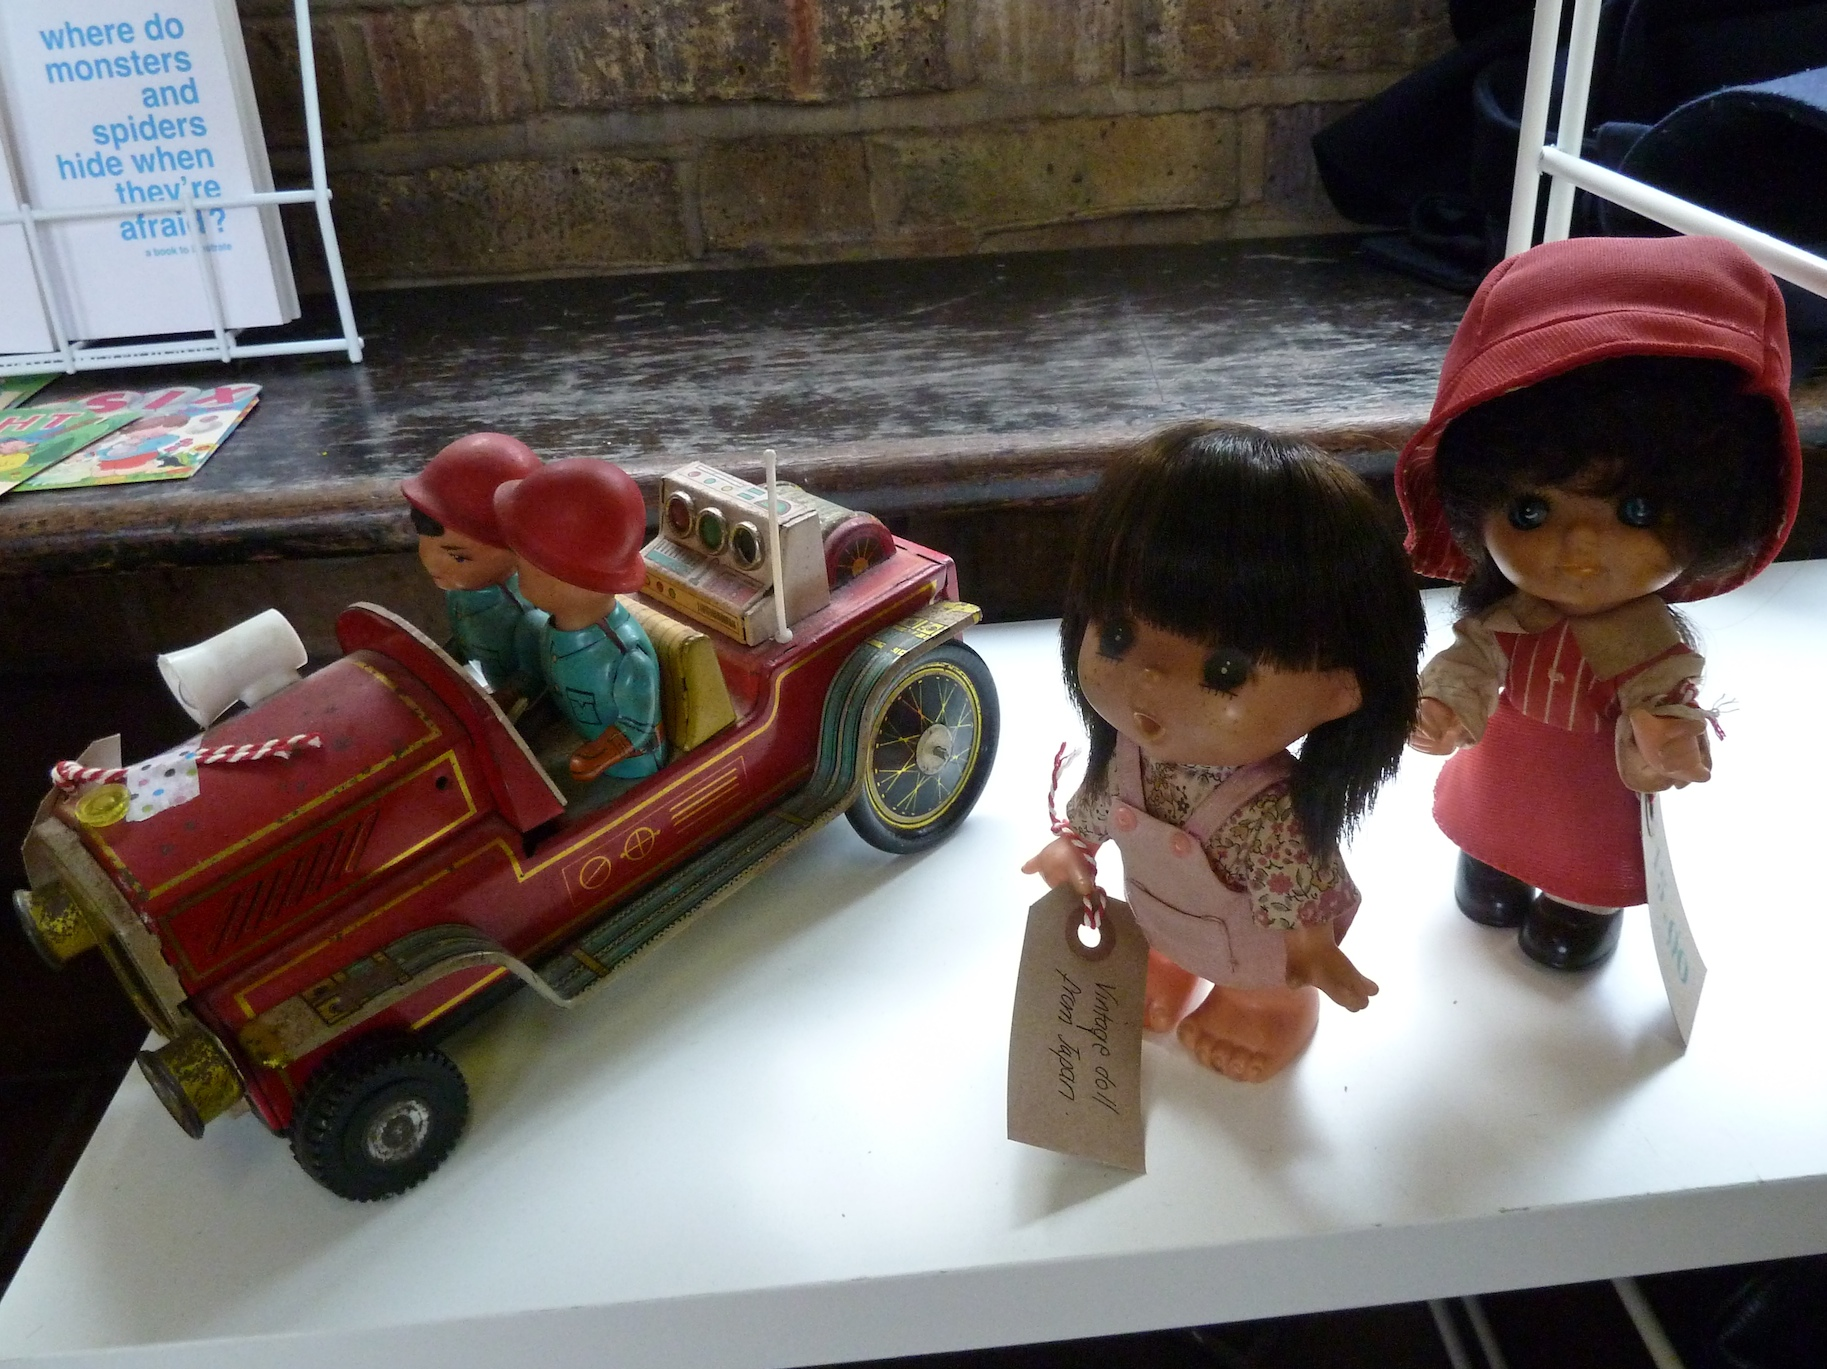 Molly Meg had sone great vintage toys including dolls from Japan at Midcentury Modern